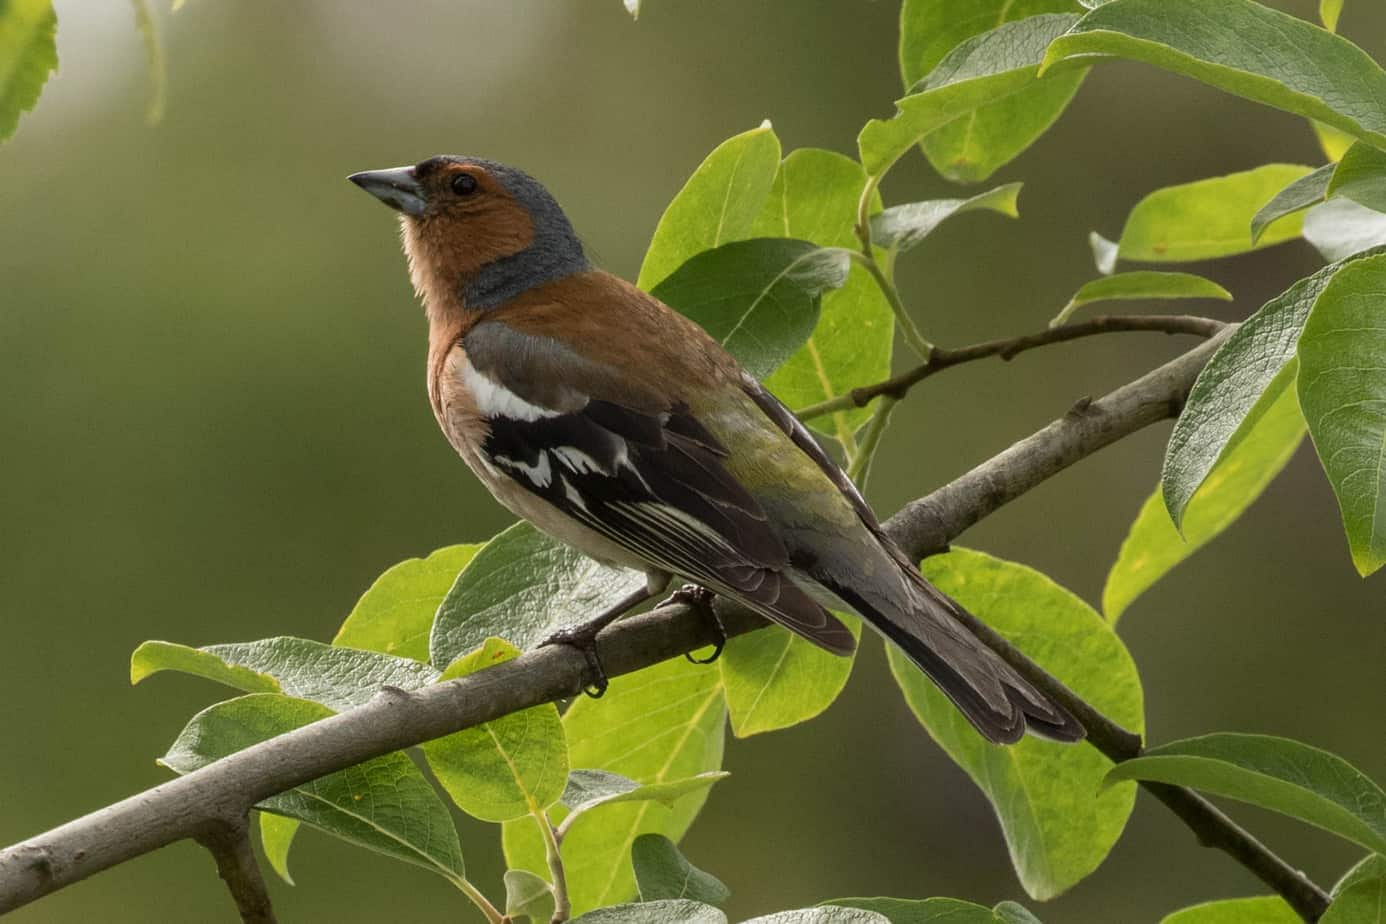 Common Chaffinch @ Nittedal, Norway. Photo: Håvard Rosenlund